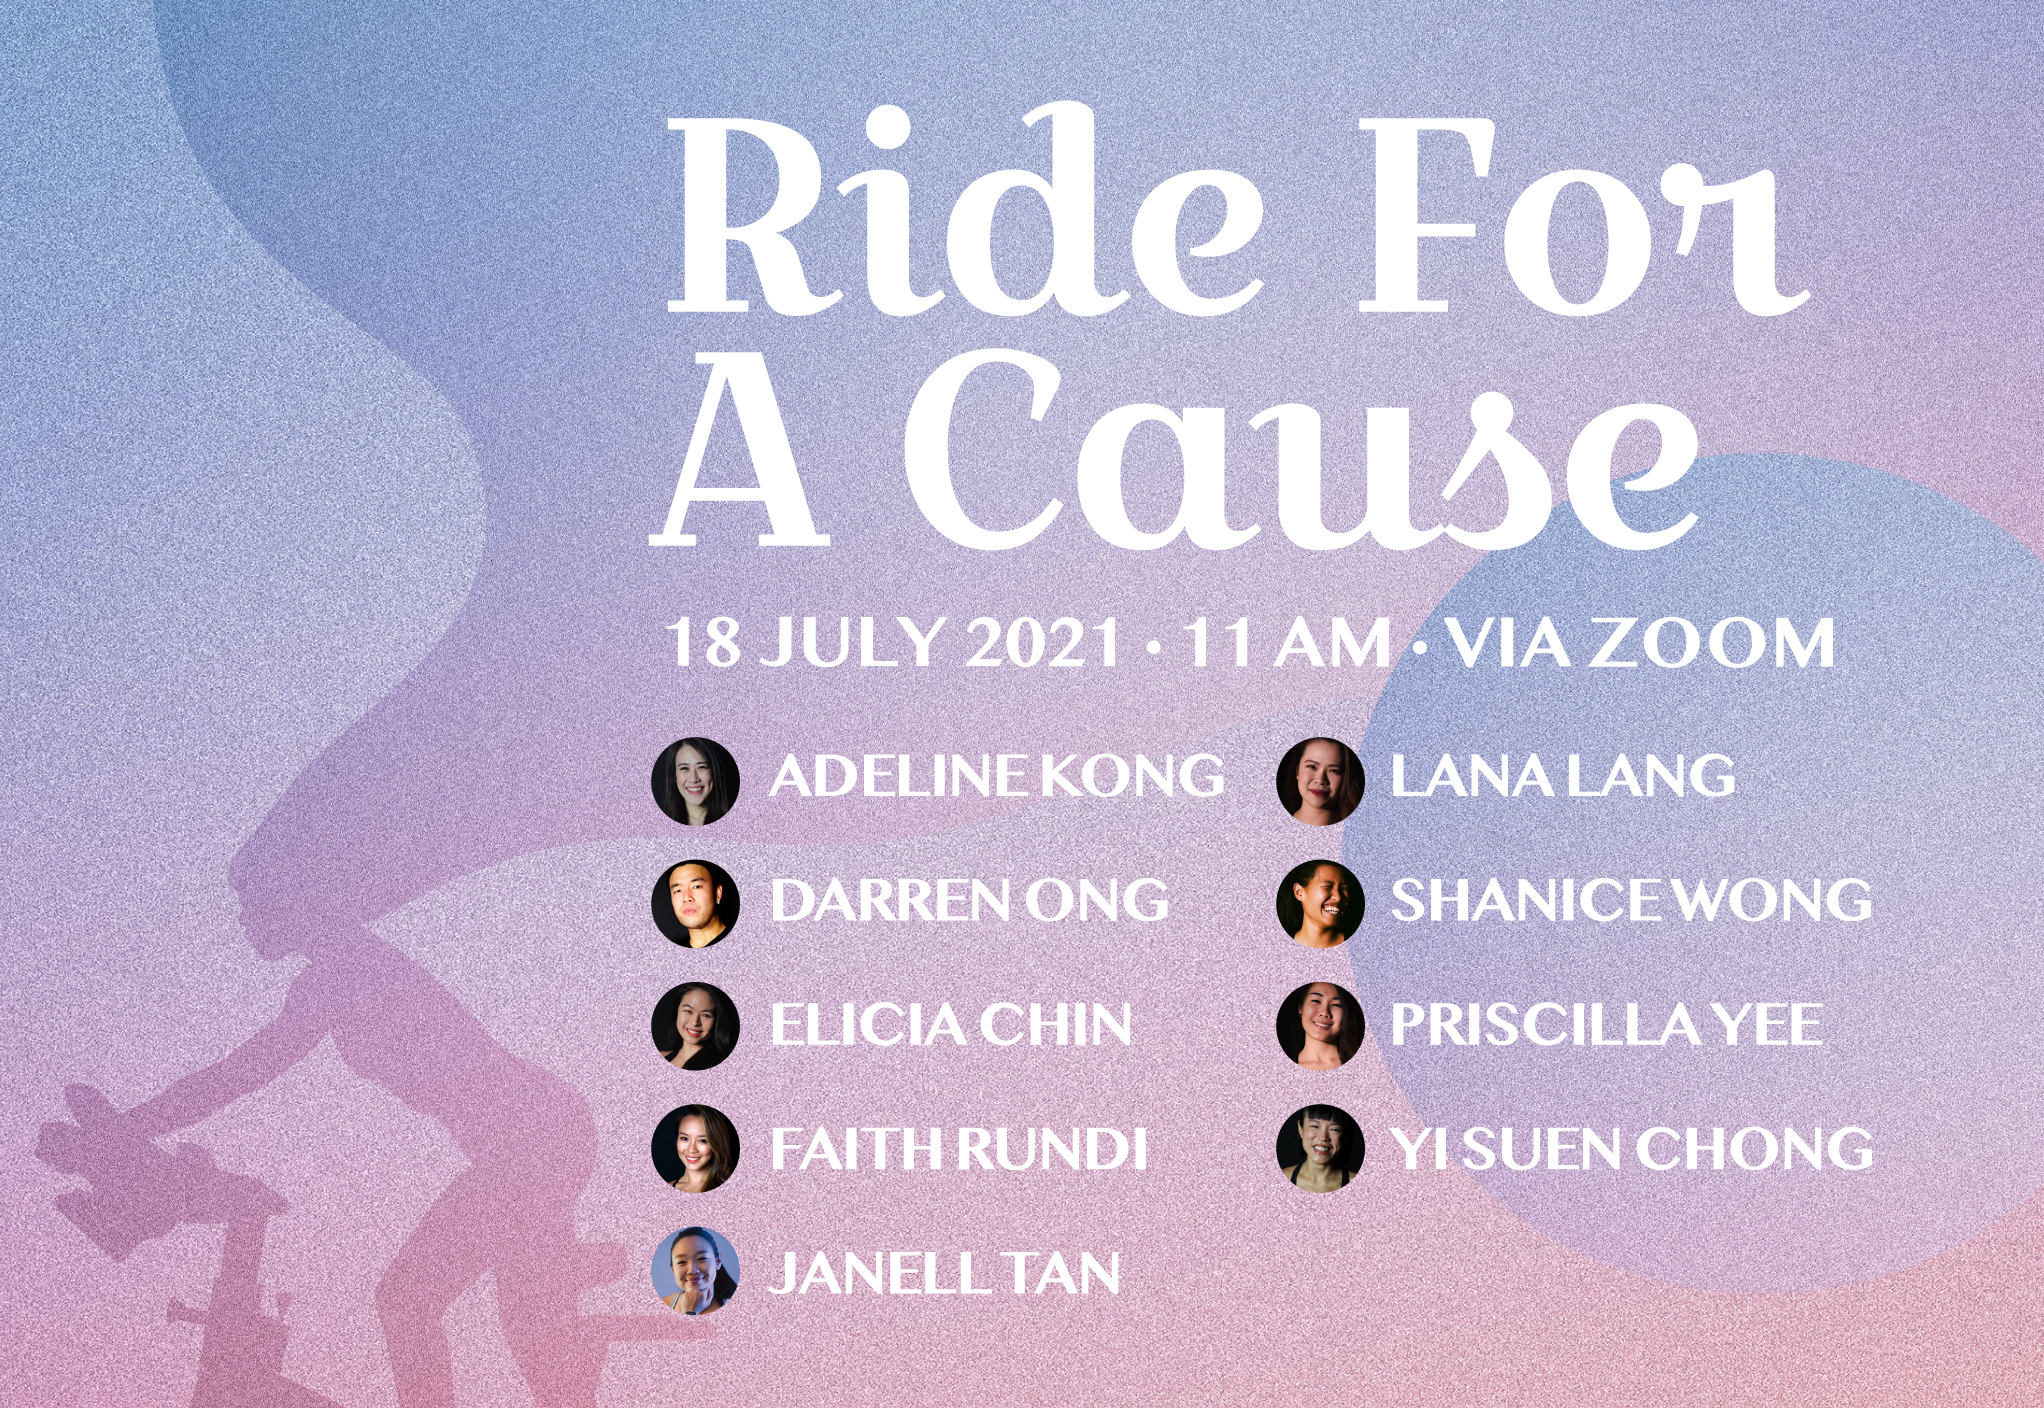 Ride-For-A-Cause